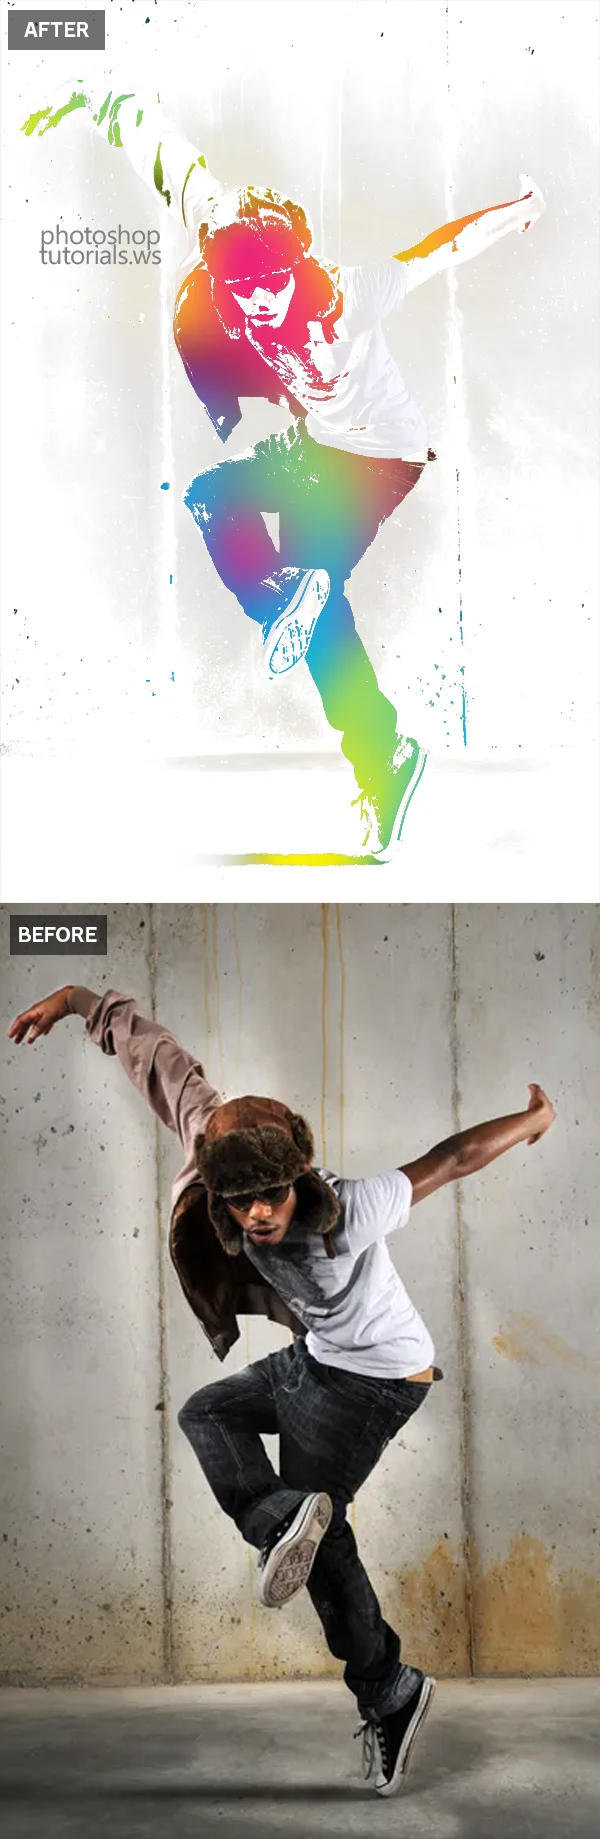 How to Create Urban Ink Photo Effect in Photoshop Tutorial